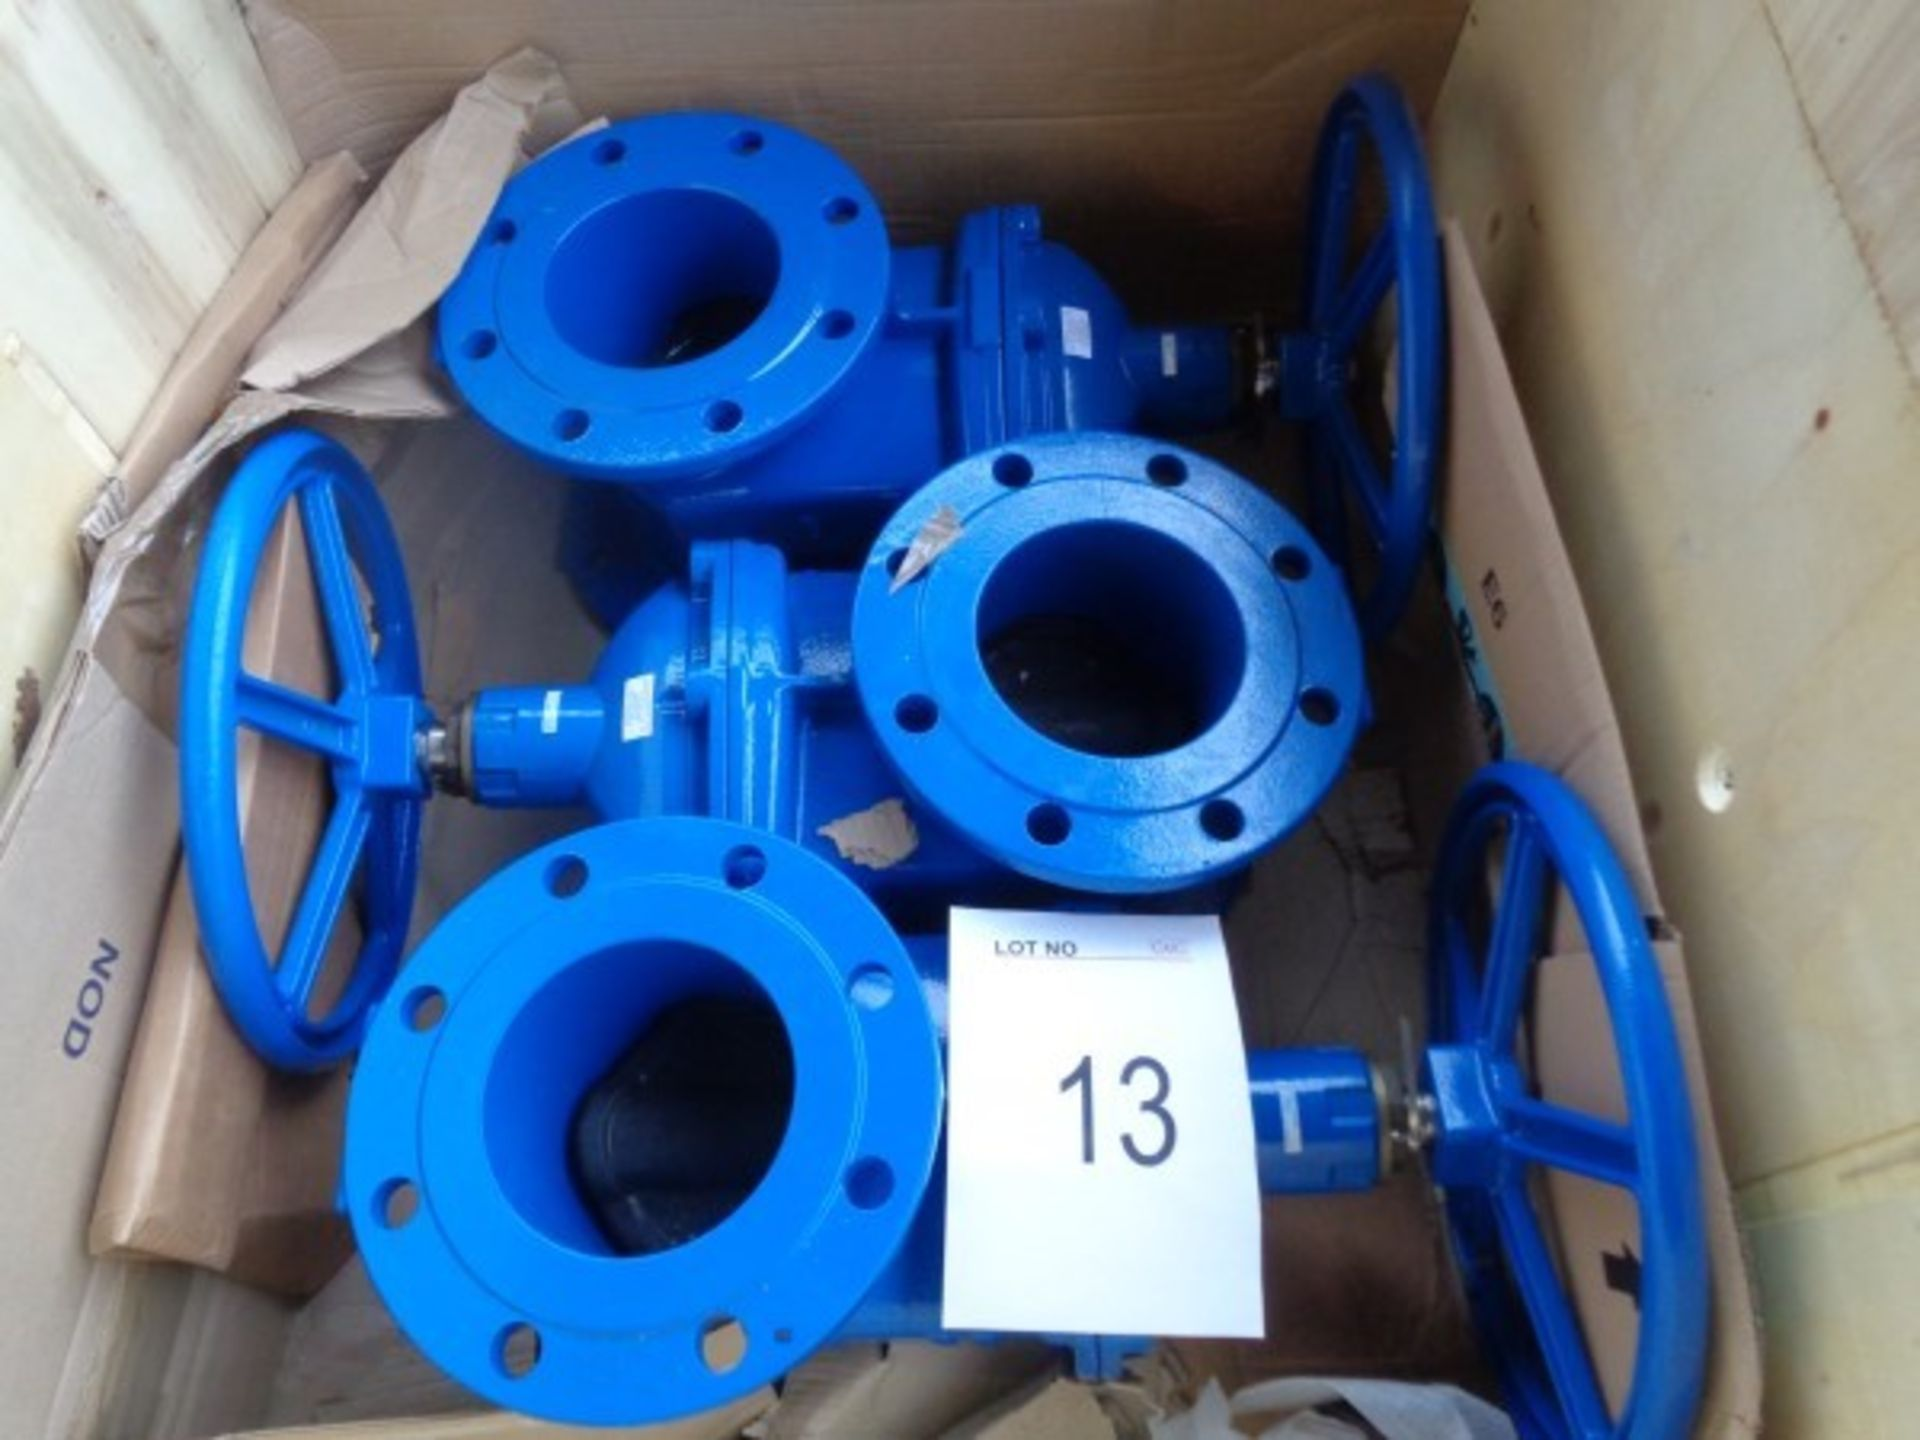 3 x Aqua Flow DN150 PN16 res/sg gate valves